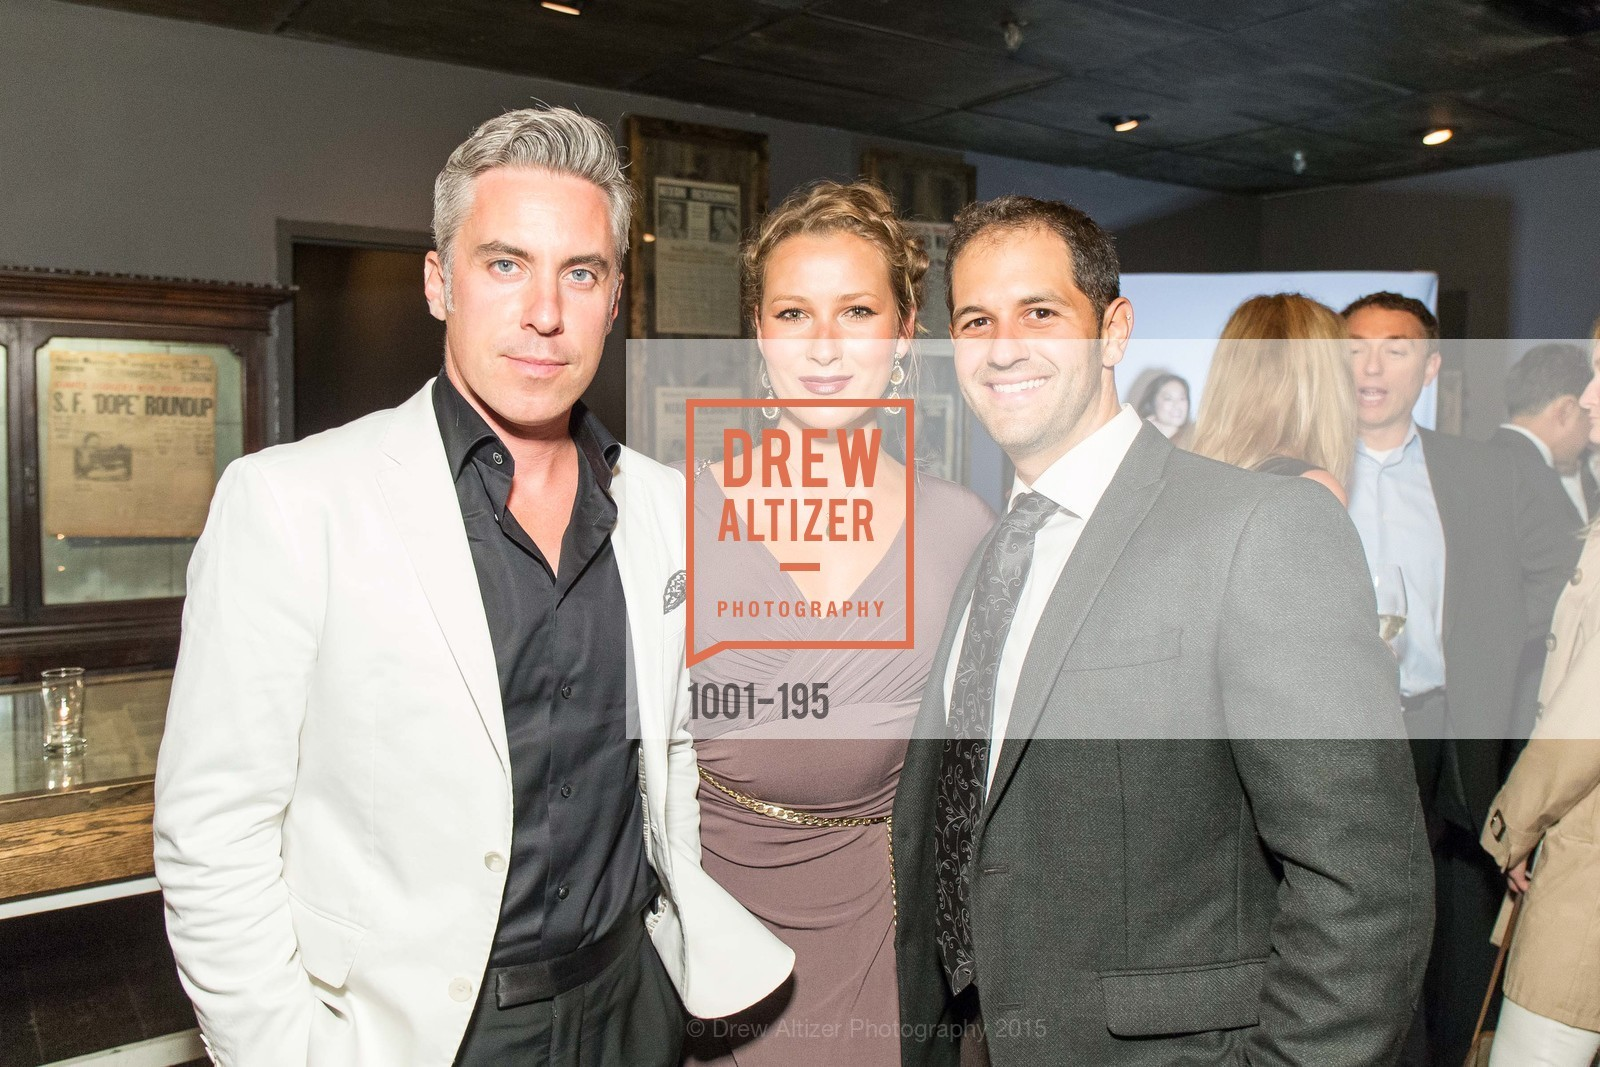 Eoin Harrington, Svetlana Kolesnikova, Jaron Eliopoulos, Climb Real Estate and Sindeo Celebrate the Launch of Million Dollar Listing San Francisco, Local Edition San Francisco. 691 Market St, July 8th, 2015,Drew Altizer, Drew Altizer Photography, full-service agency, private events, San Francisco photographer, photographer california